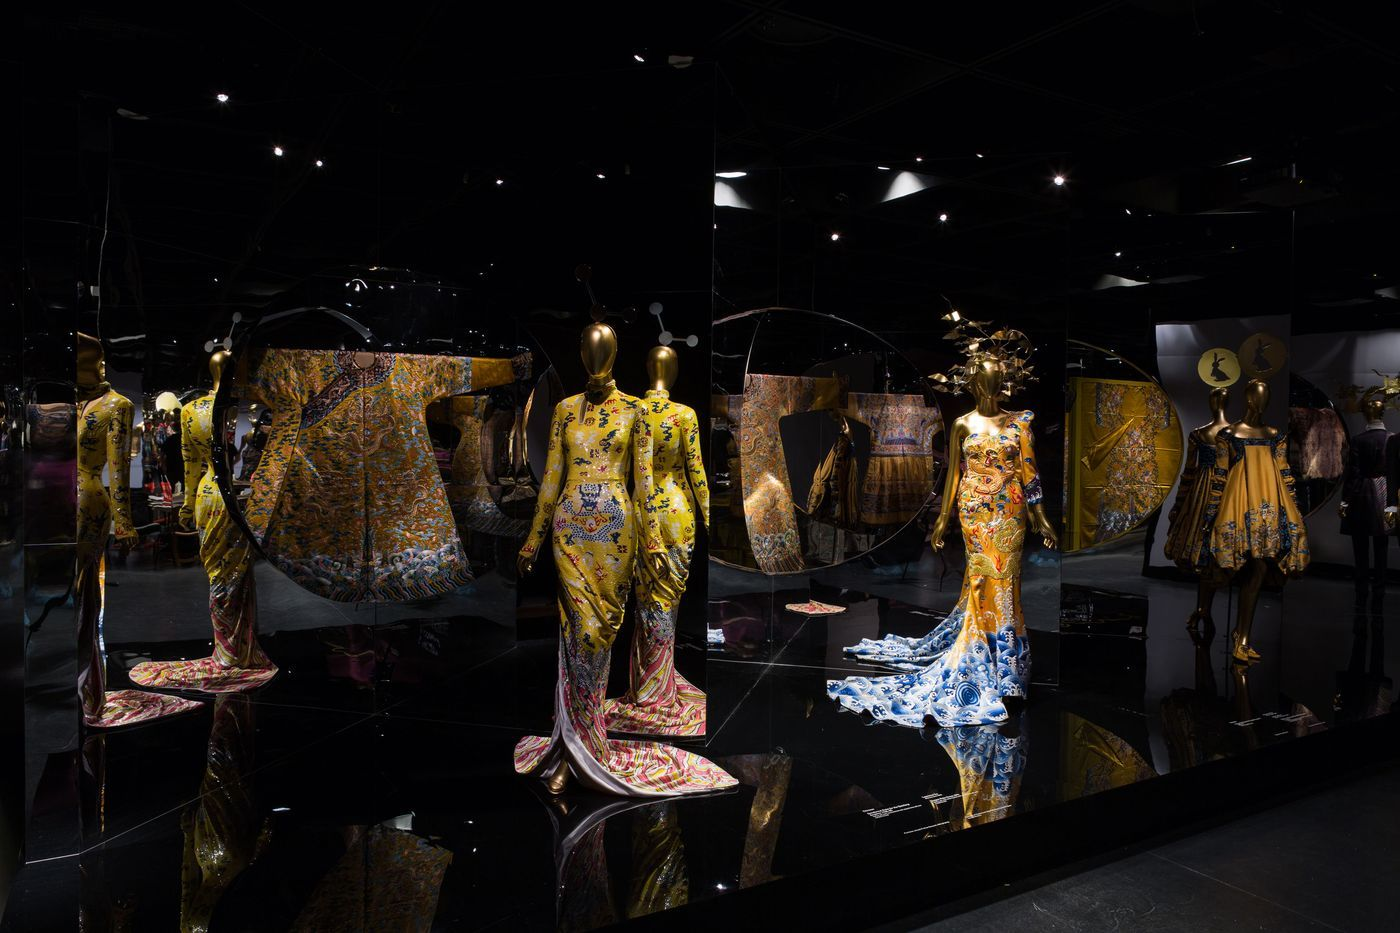 The Met S China Exhibit Thoughtful Beautiful And Surprisingly Respectful Show Looks Shows